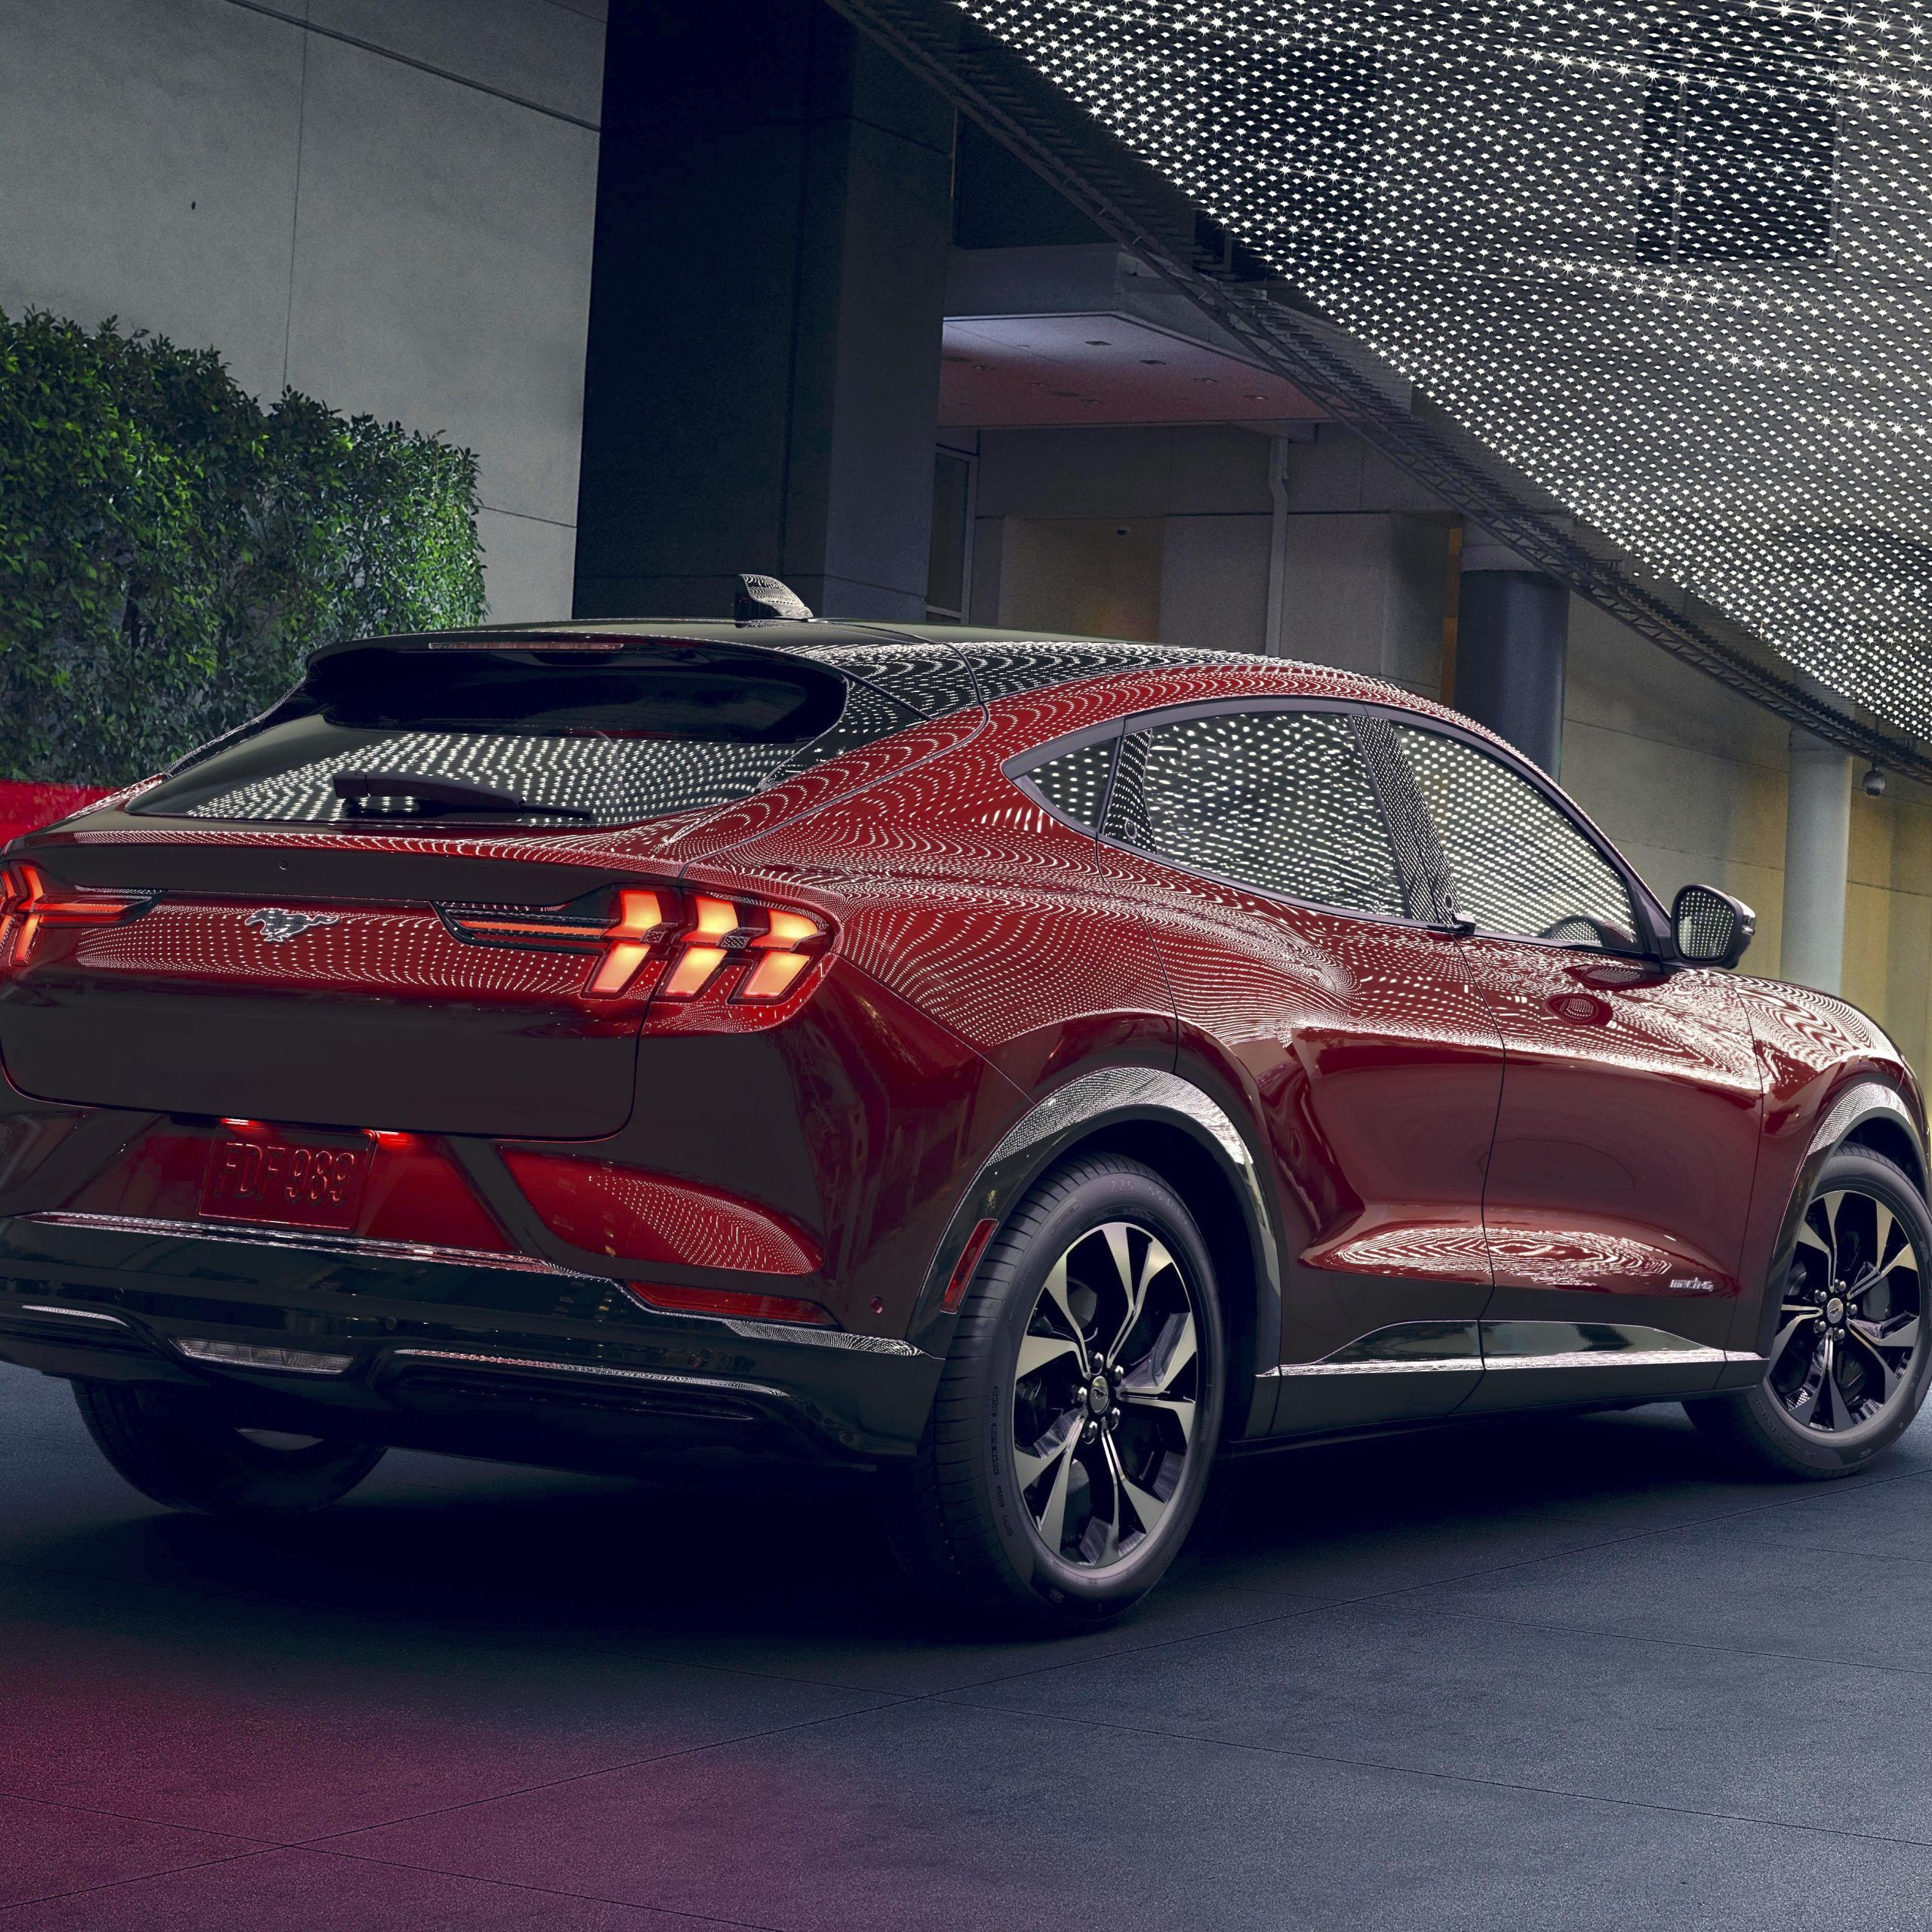 Mustang Mach E Best Of Ford Unveils Battery Electric Mustang Mach E Crossover Suv Crossover Suv Mustang Ford